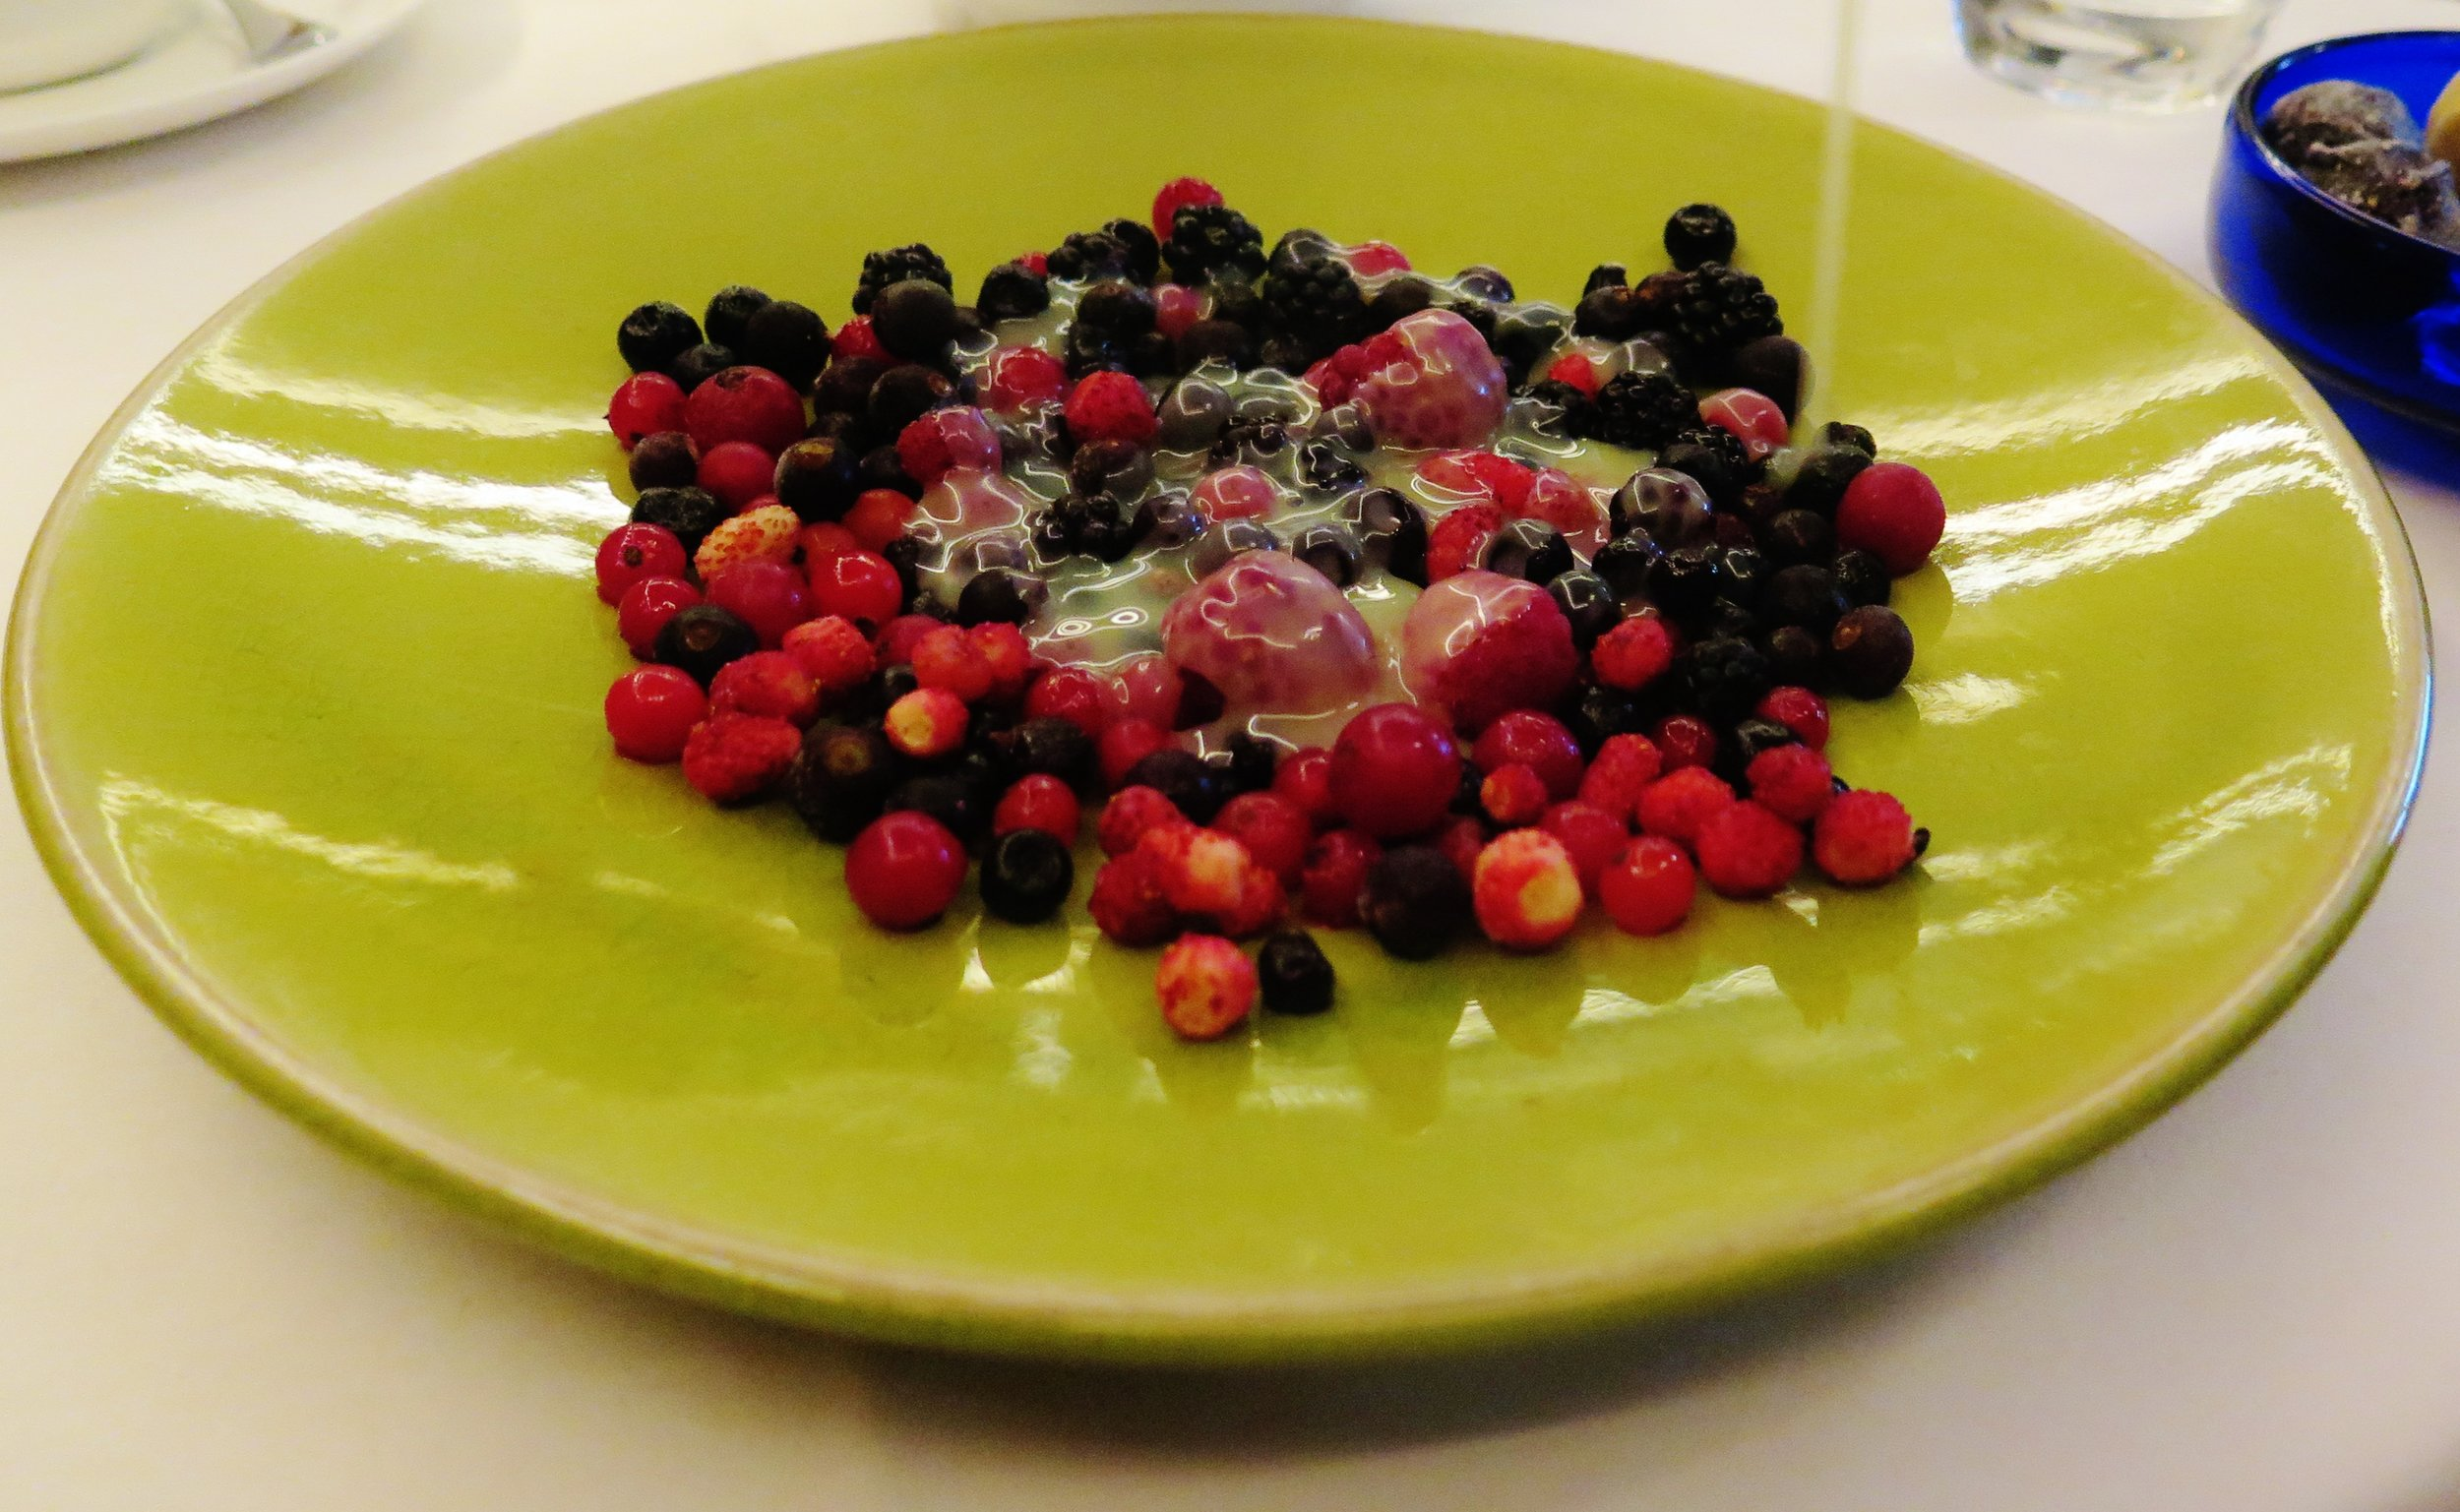 Iced berries, Le Caprice - an off-the-menu secret dessert